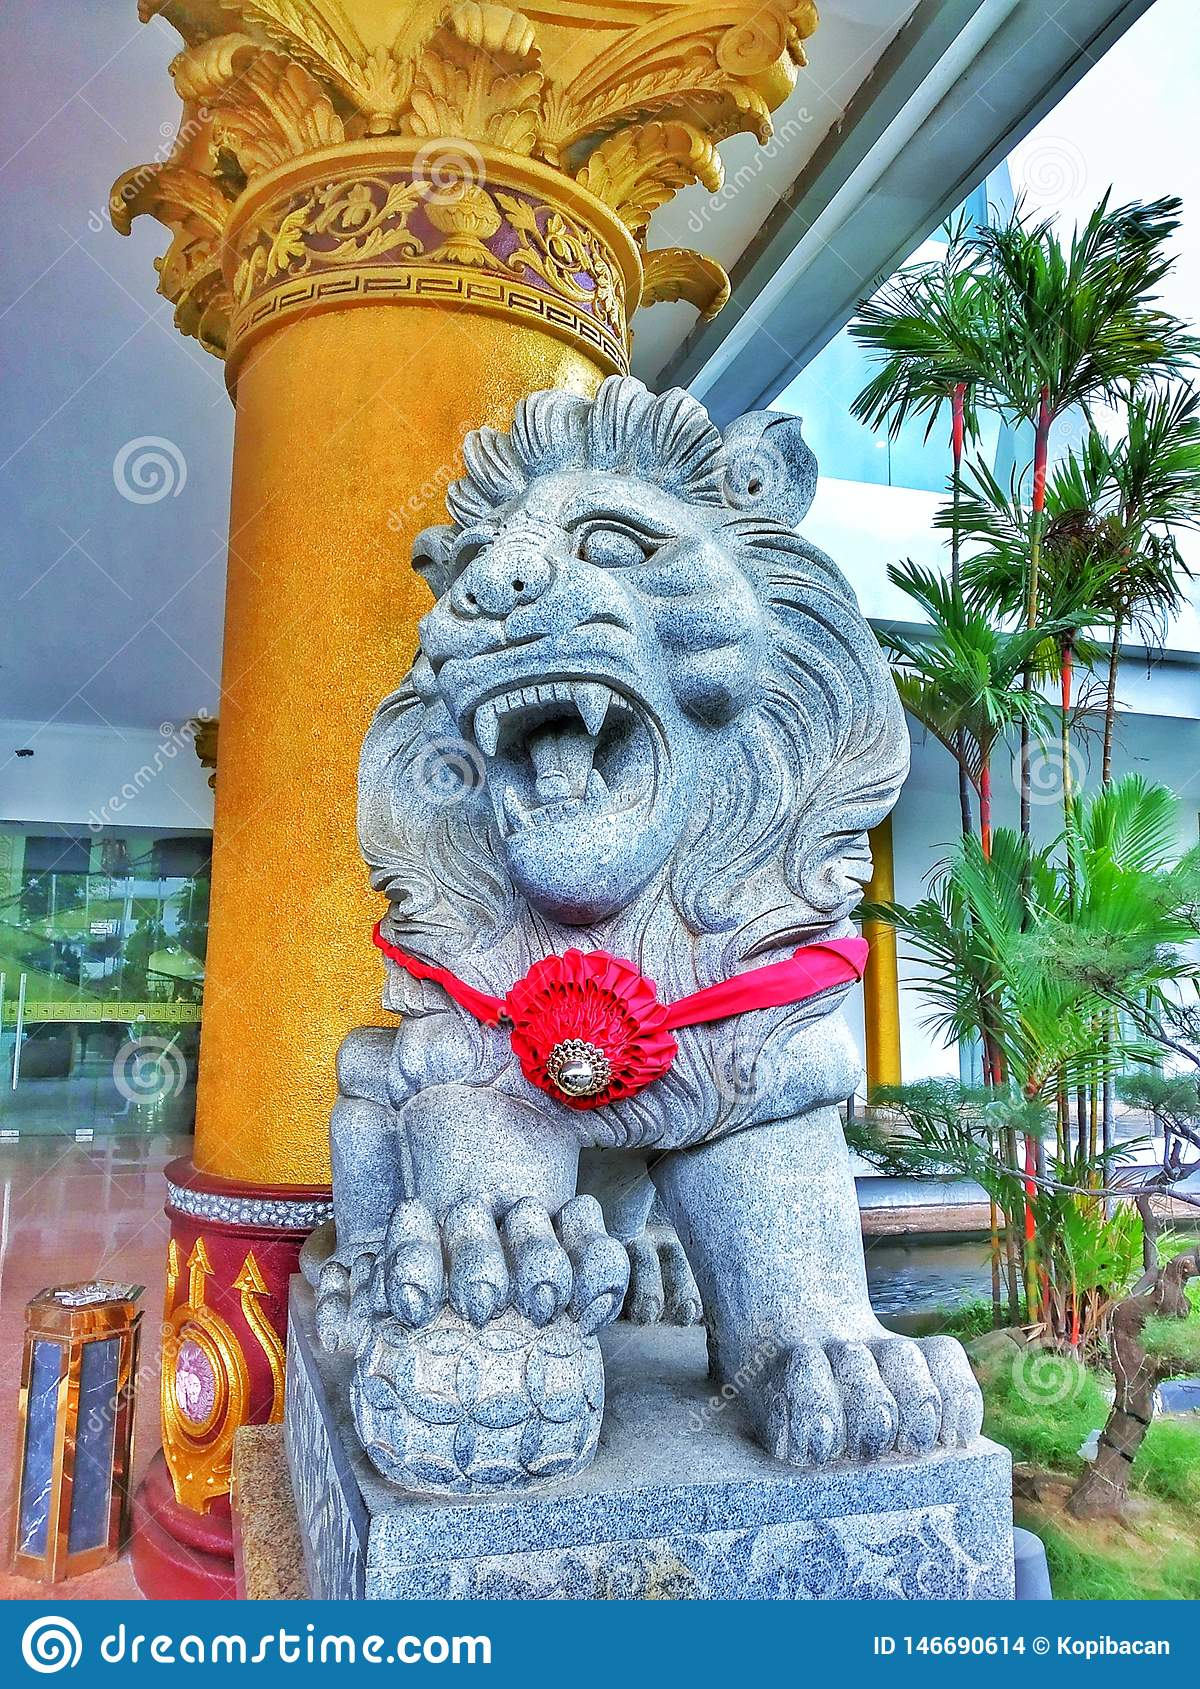 a statue of a lion in front of the hotel